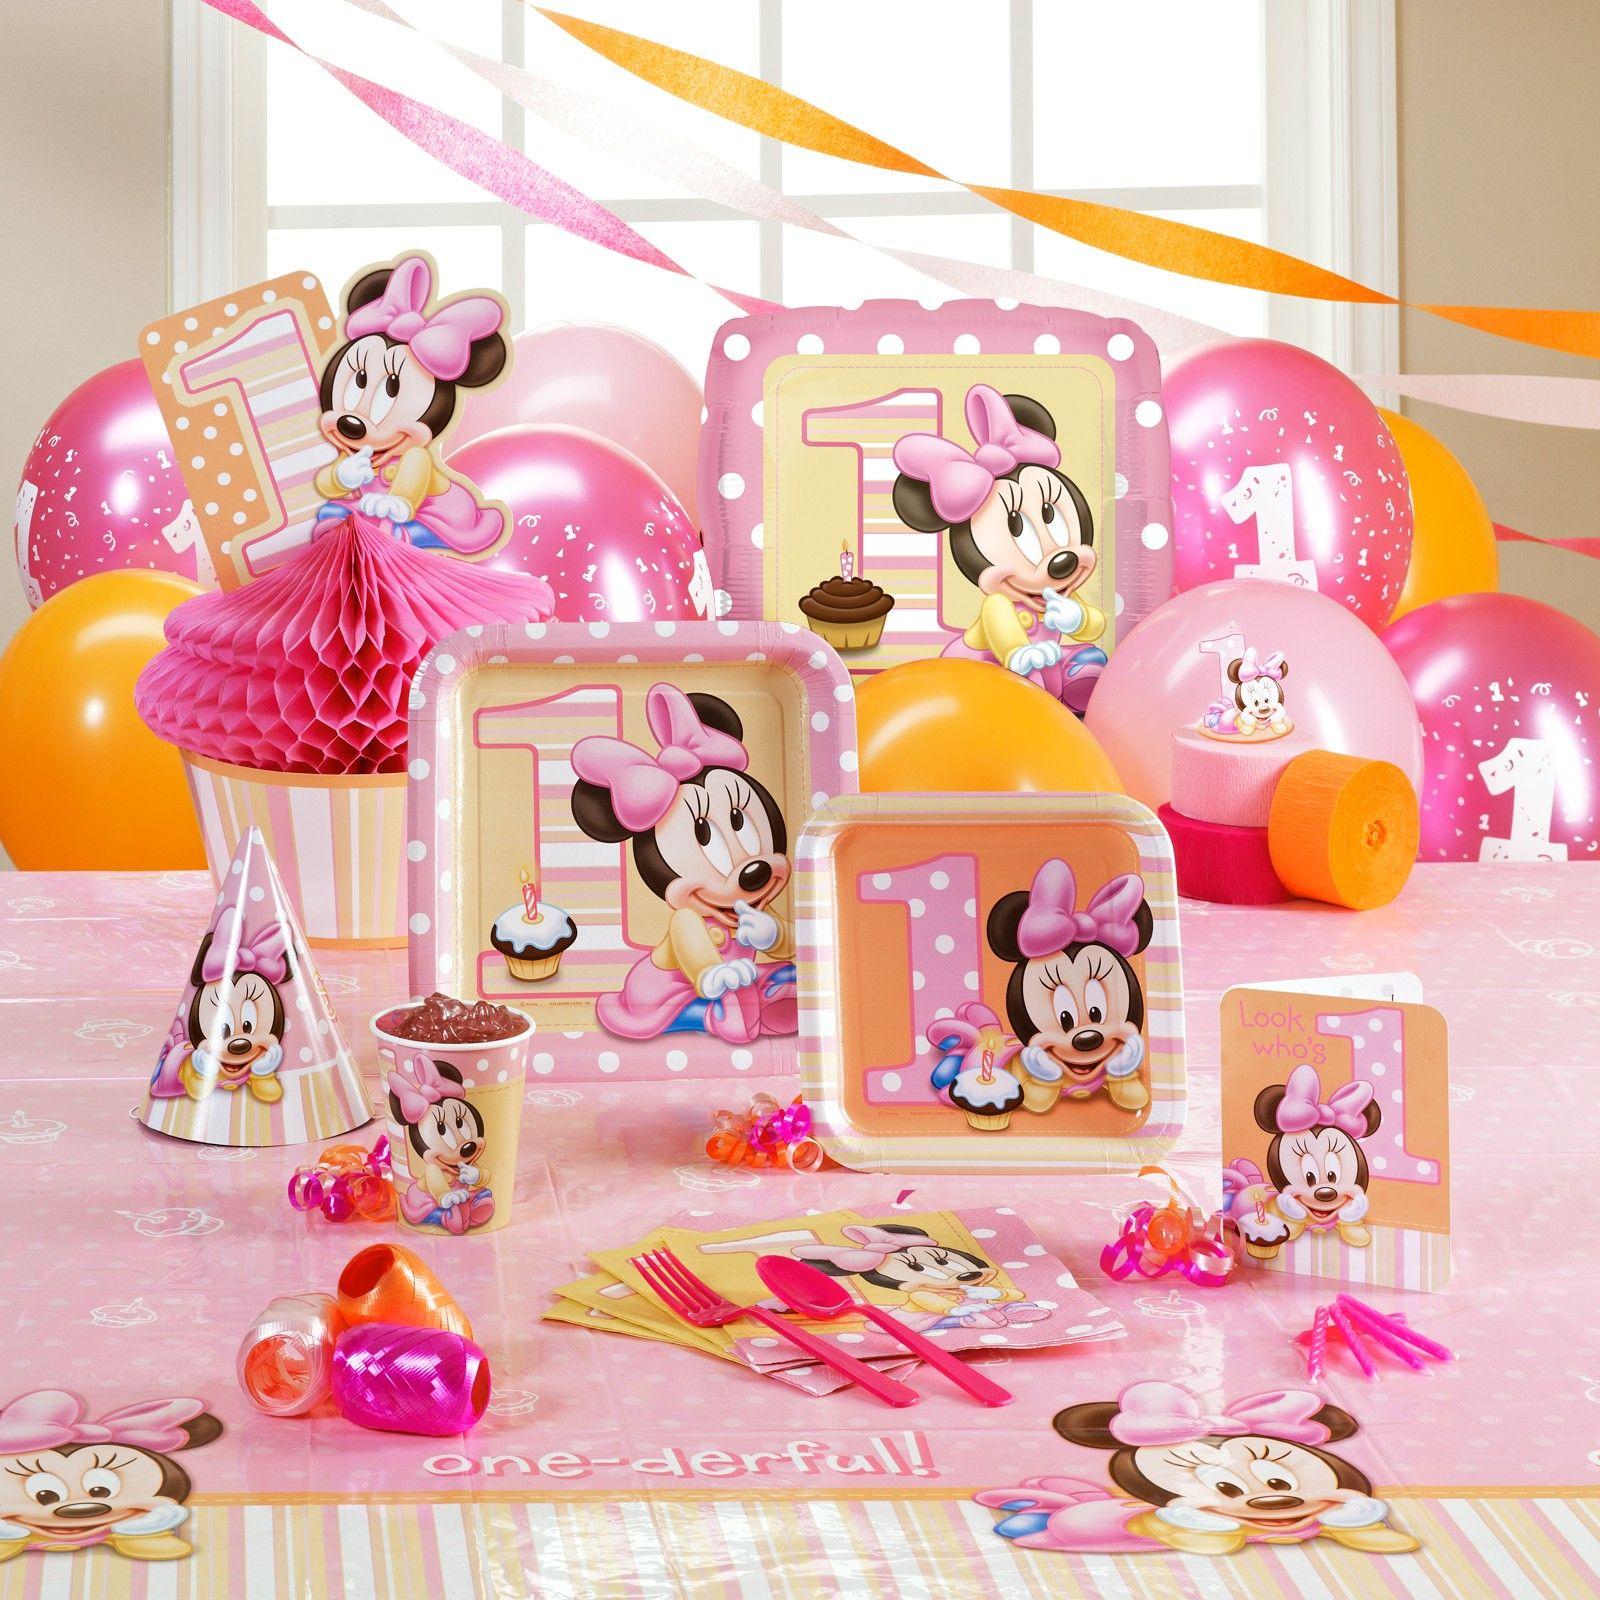 Minnie Mouse 1st Birthday Party Ph D Serts Cakes Minnie Mouse Birthday Party Supplies Minnie Mouse 1st Birthday 1st Birthday Party Supplies